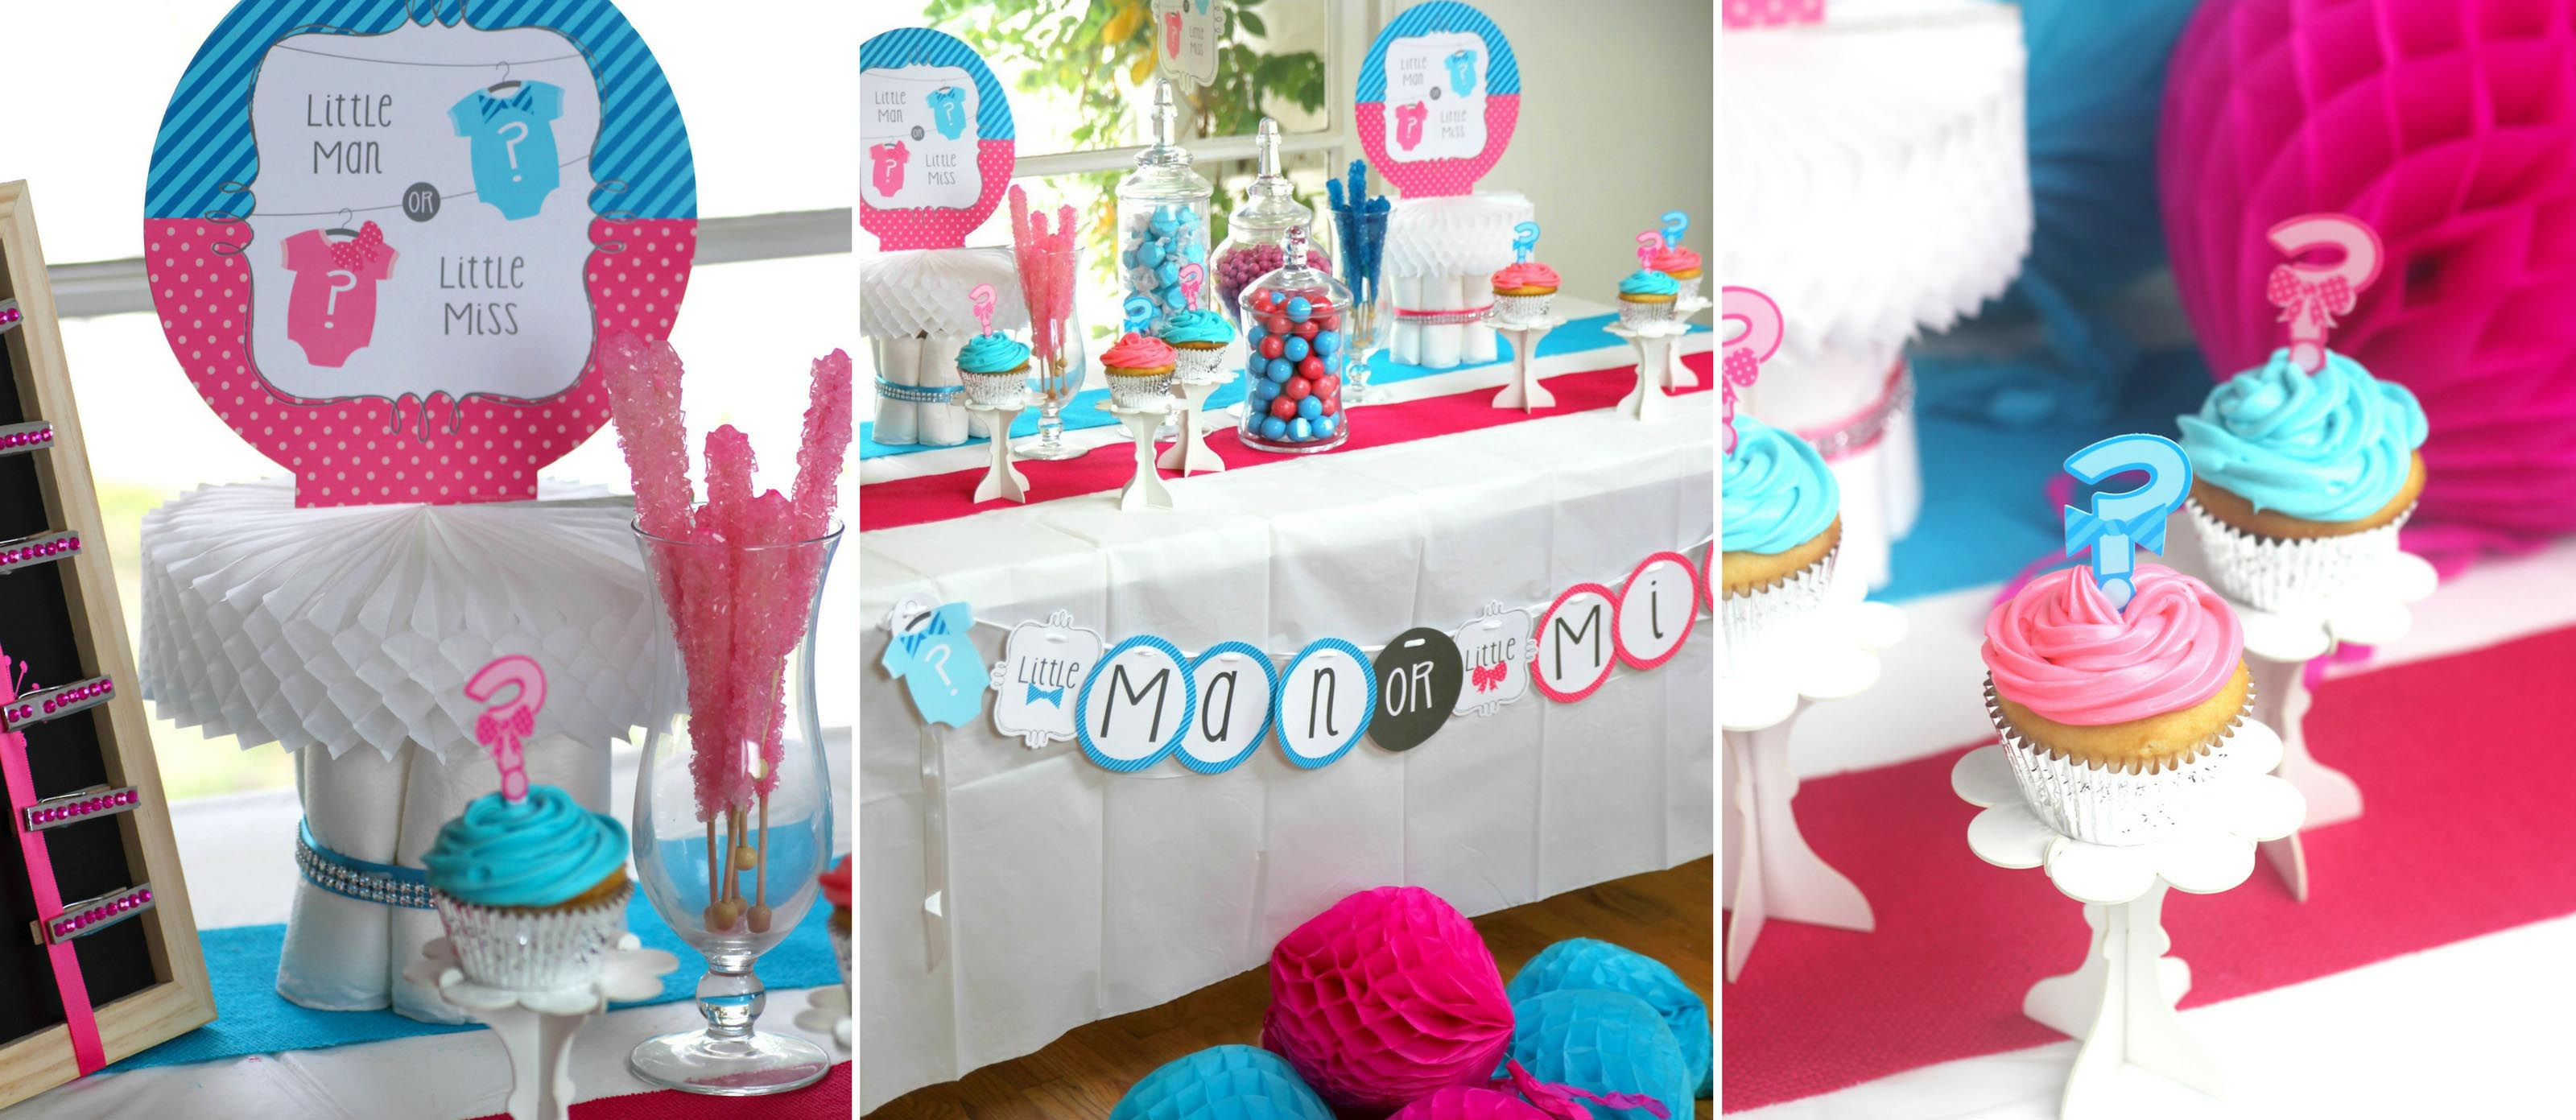 Bow Tie Themed Baby Shower Decorations  from cl-drupal.orientaltrading.com